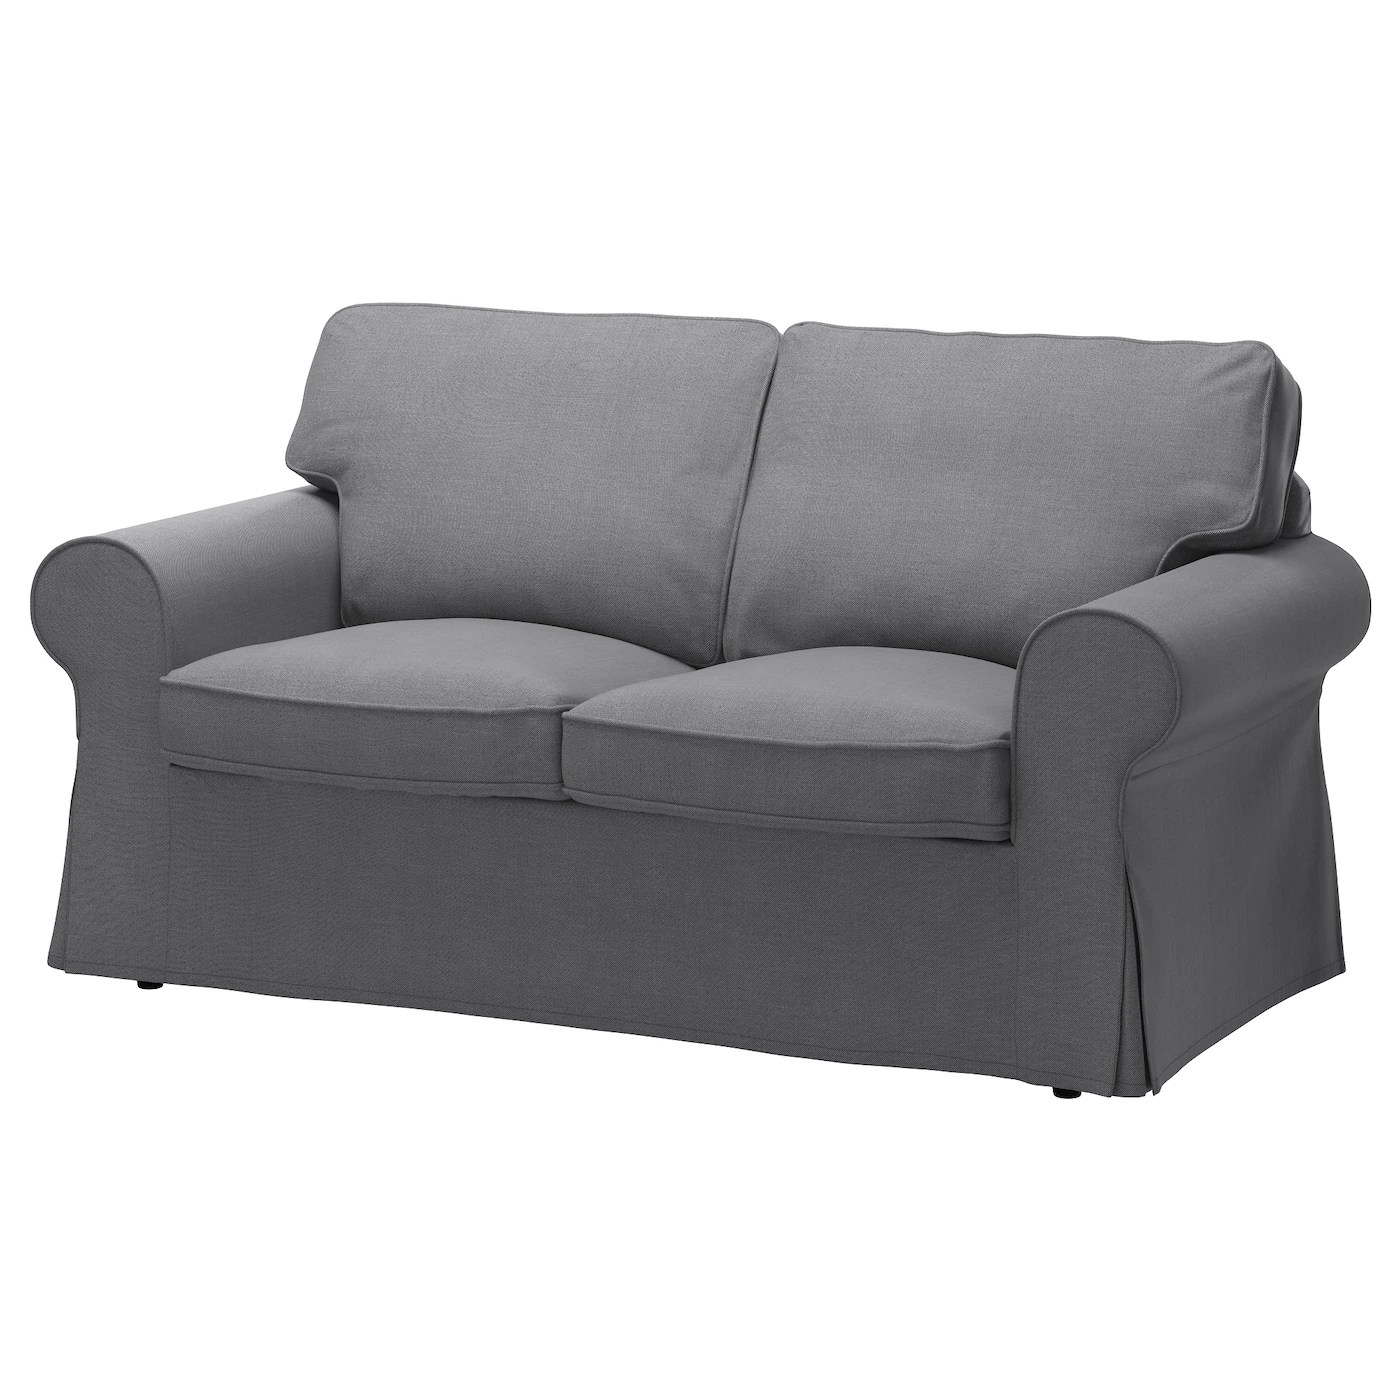 Mini Couch Small Sofa 2 Seater Sofa Ikea